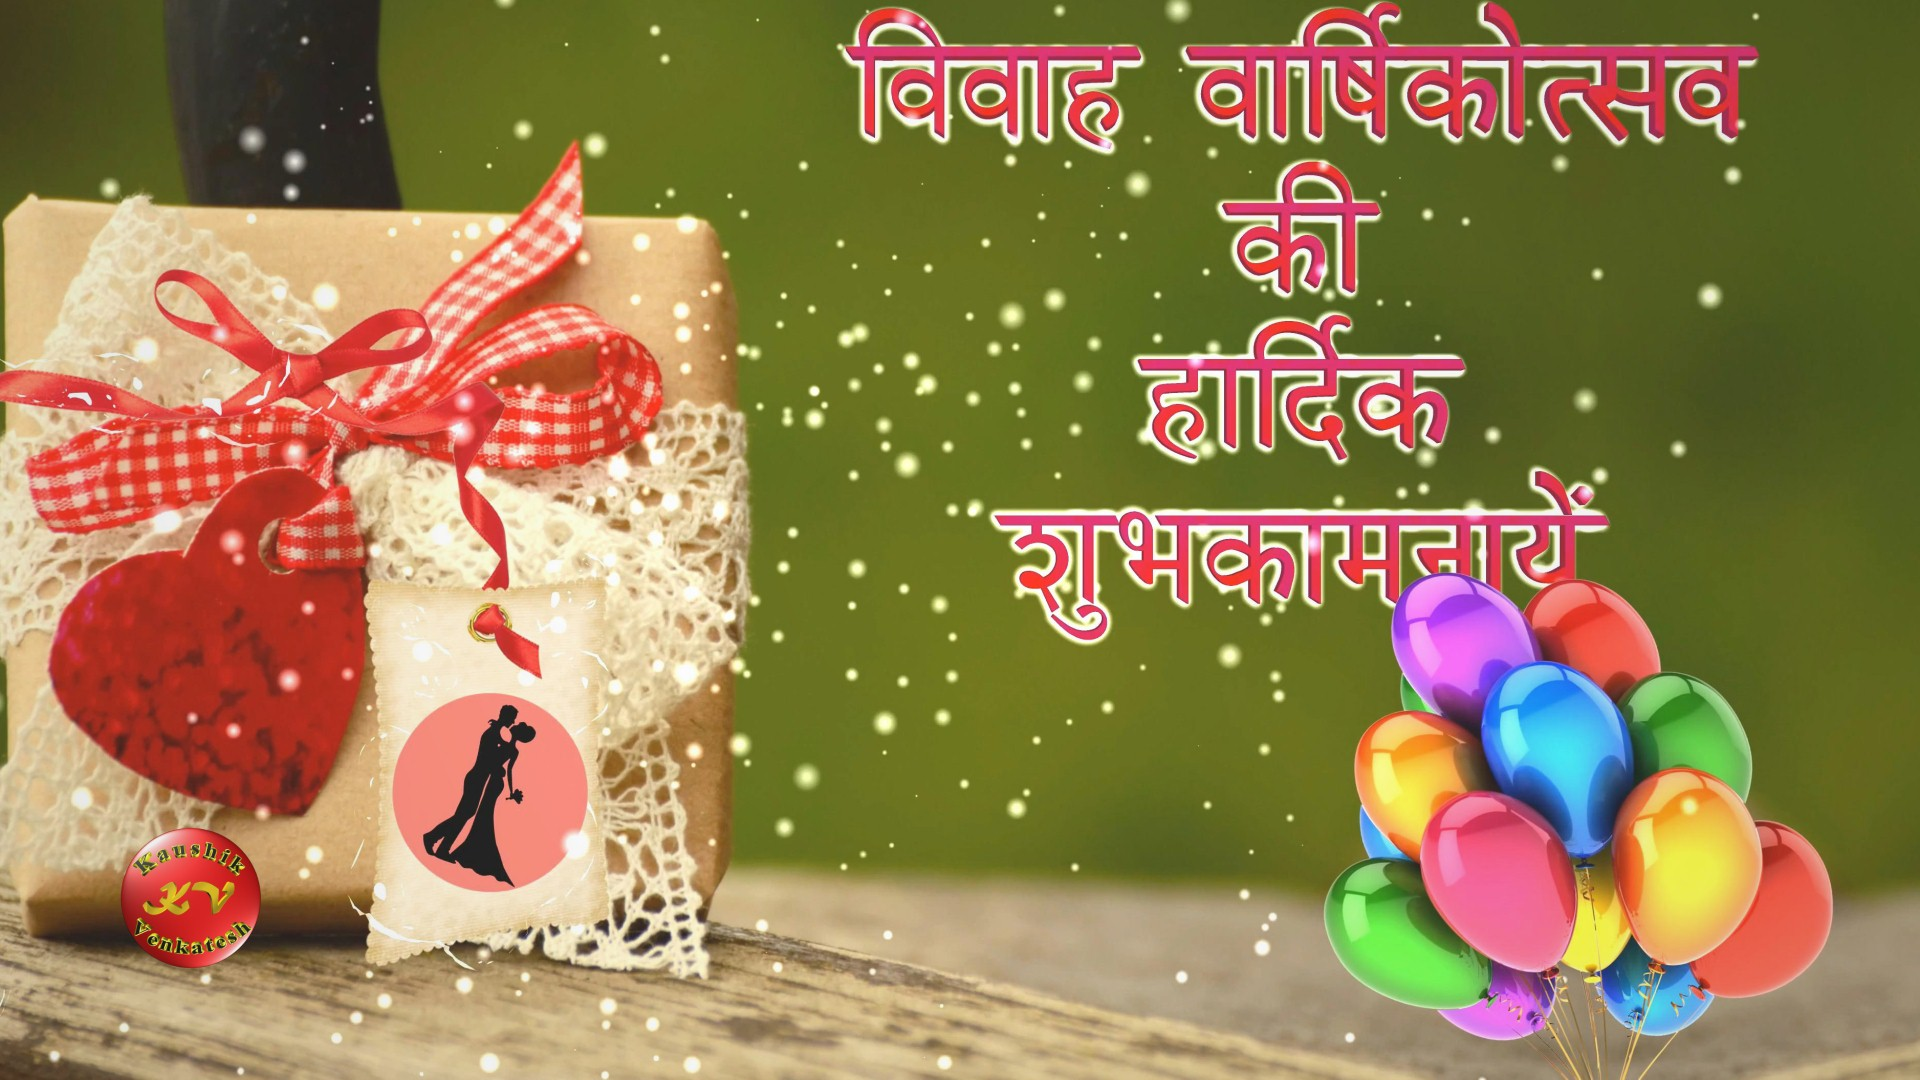 Greetings Image of Happy Wedding Anniversary Wishes in Hindi